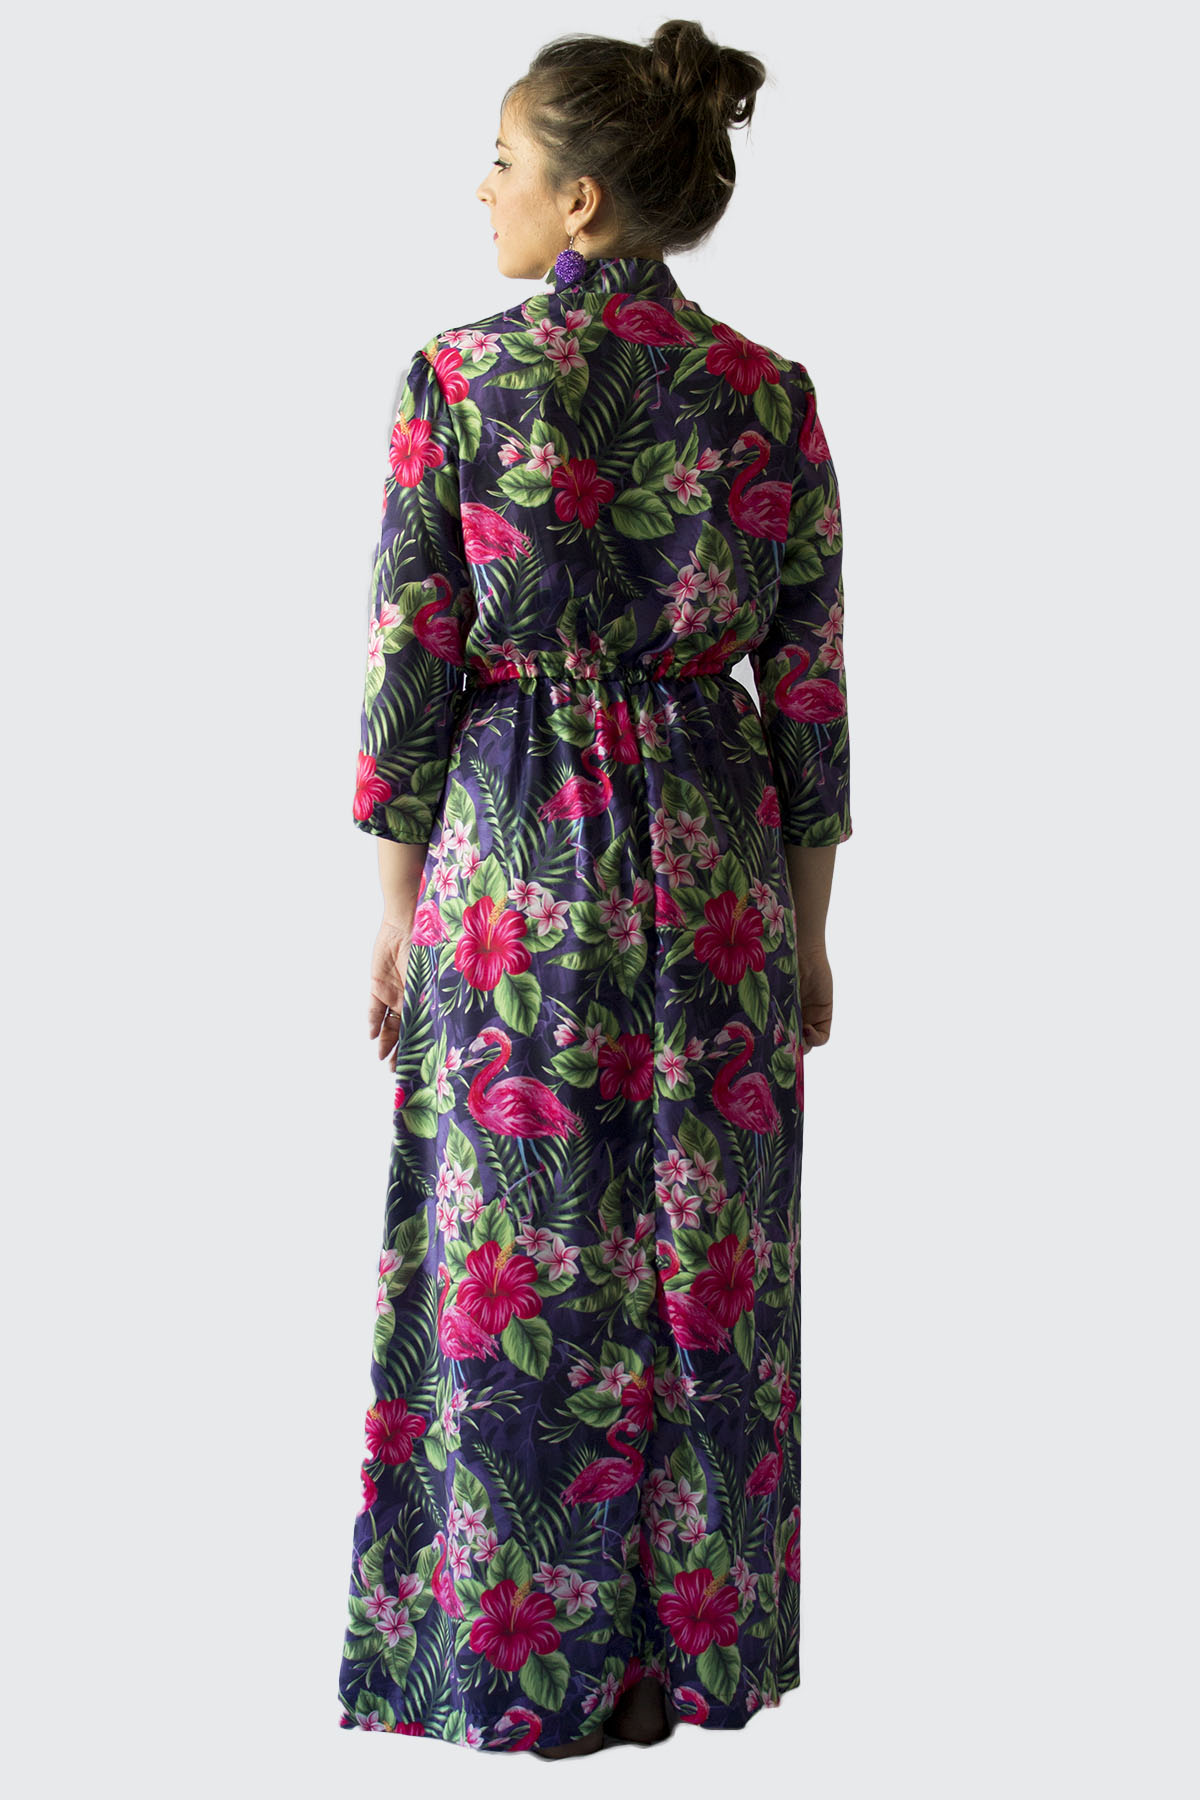 A maxi Florence dress with Flamingos